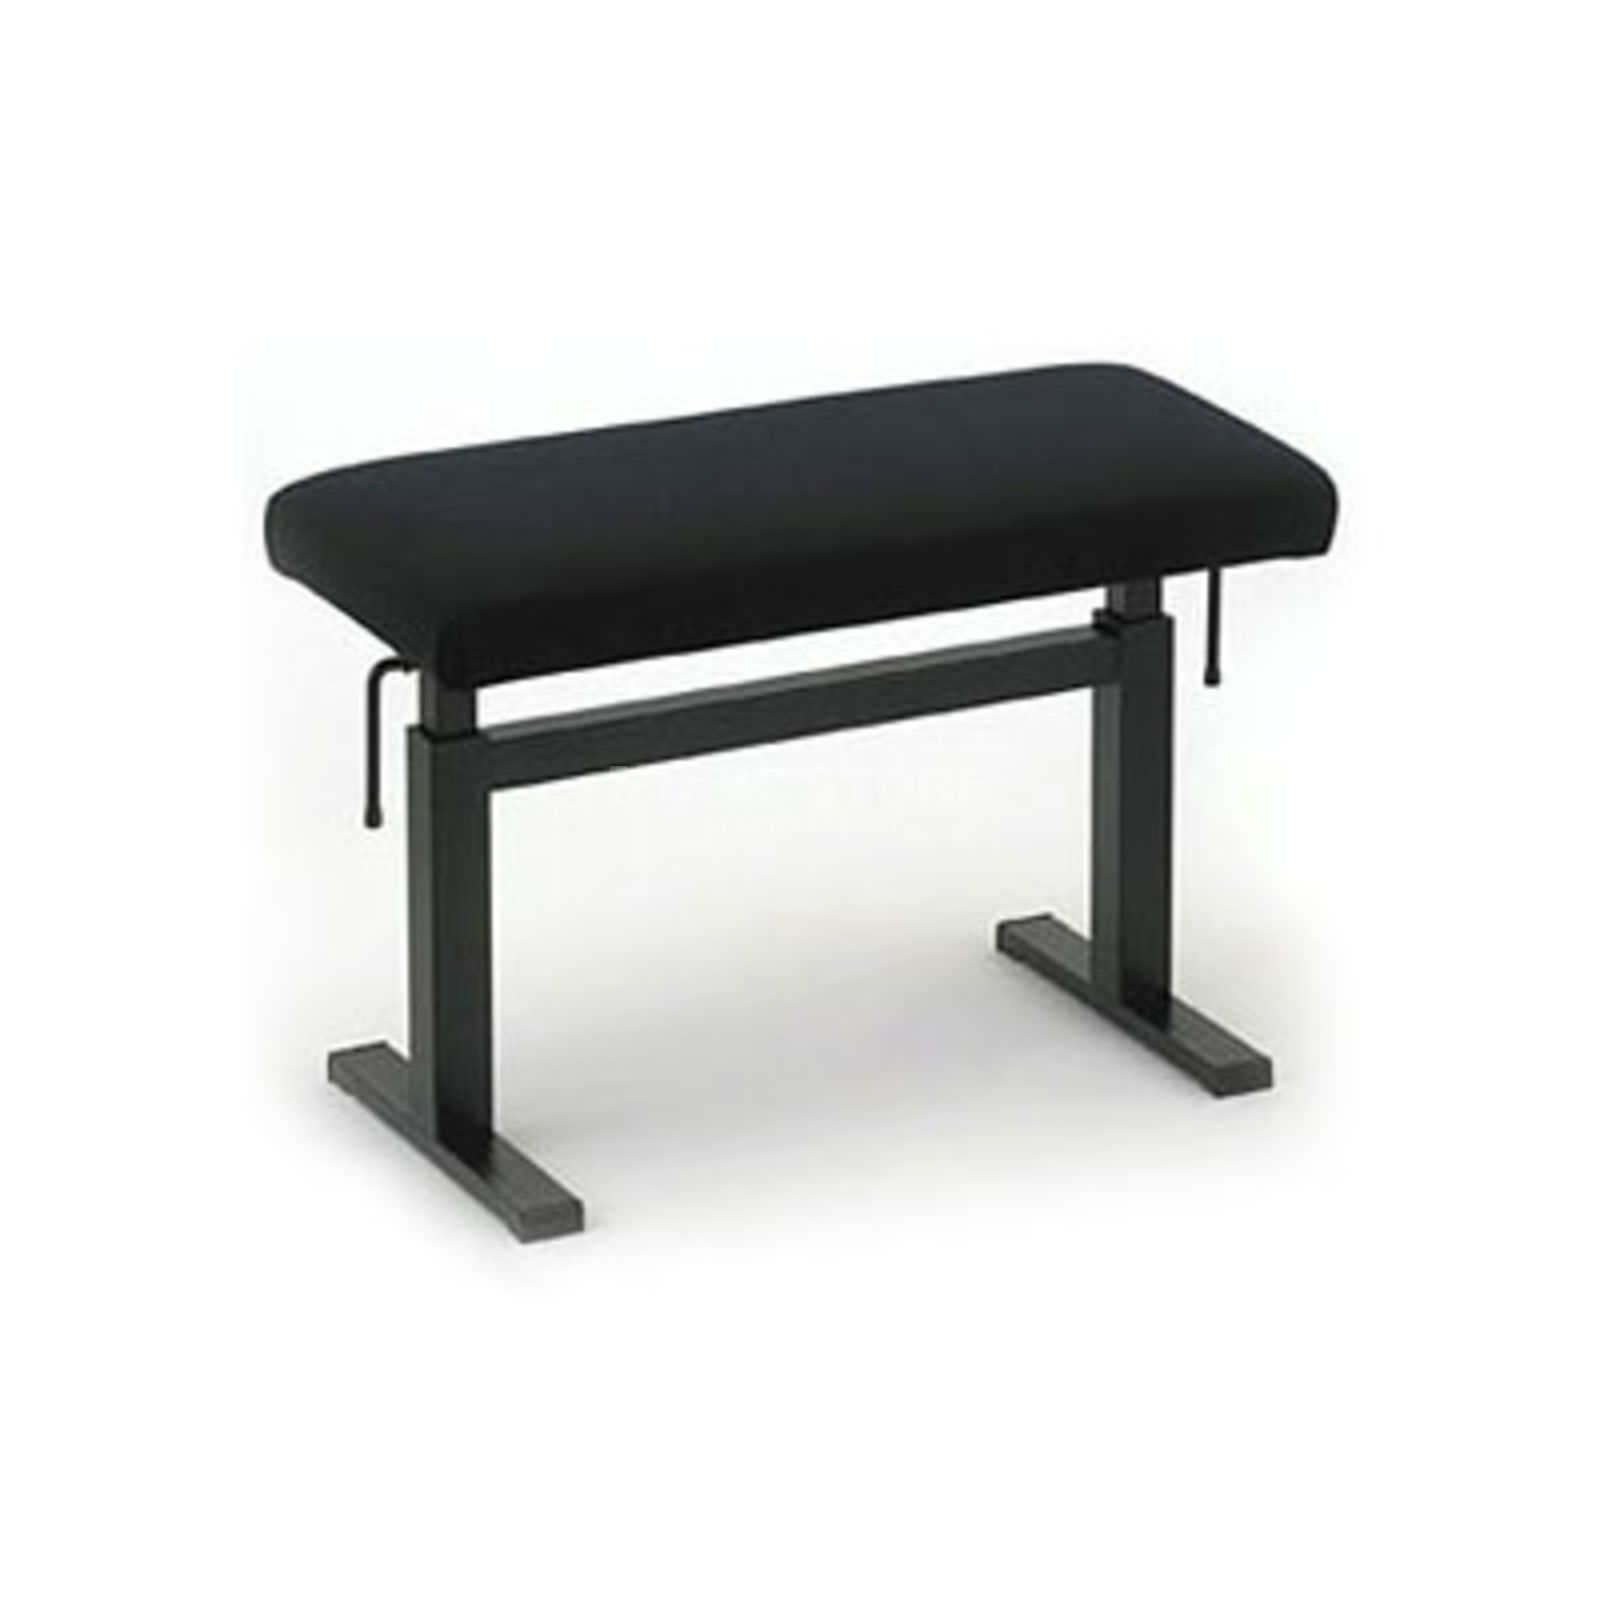 Andexinger 484 Lift-O-Matic Piano Bench 65x33cm Firm Skai Produktbillede